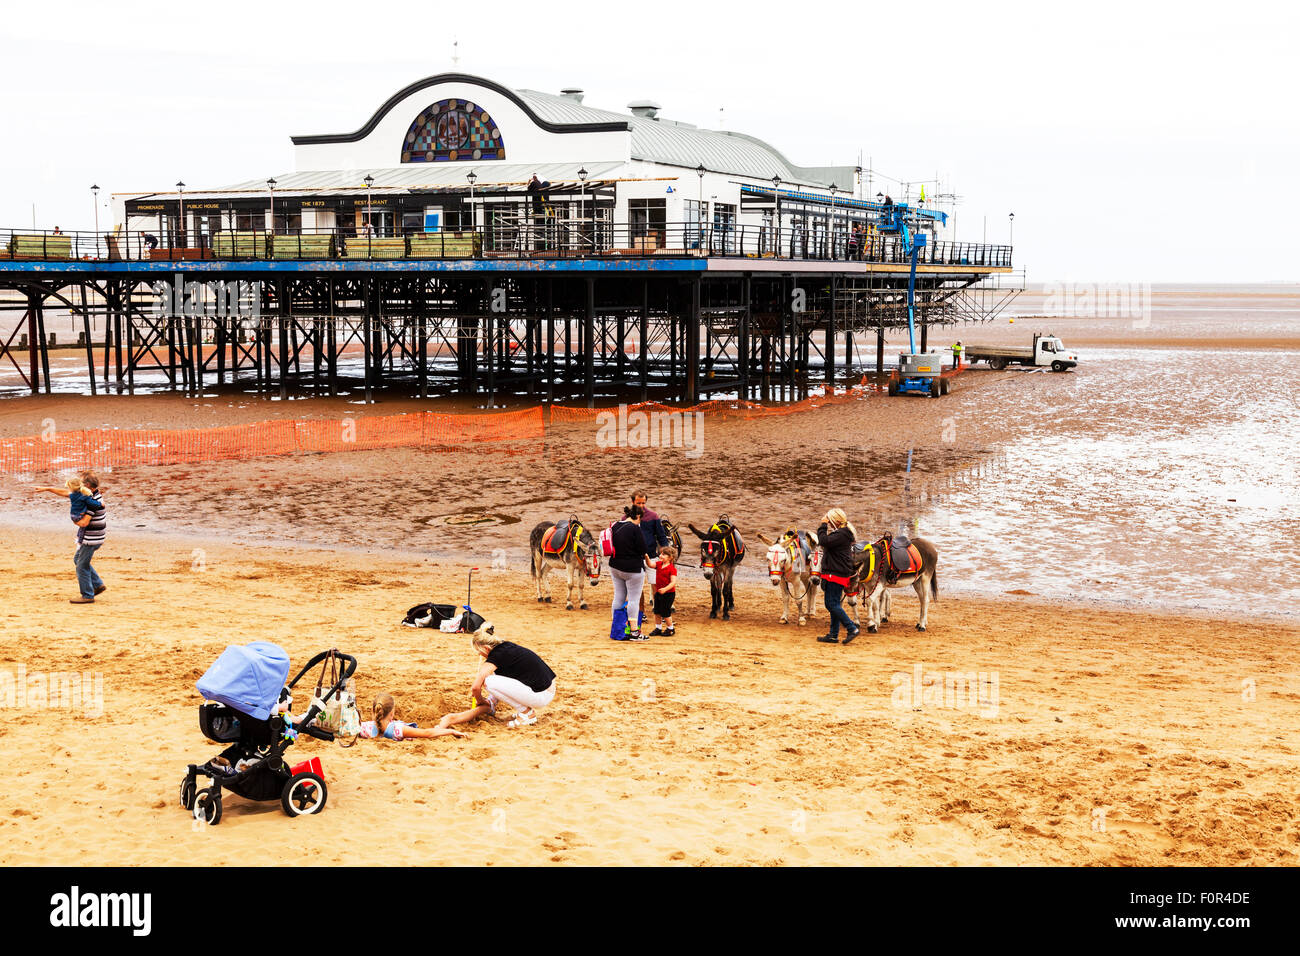 Cleethorpes pier Donkey ride rides on beach child sat on riding donkeys summer entertainment for kids UK England - Stock Image